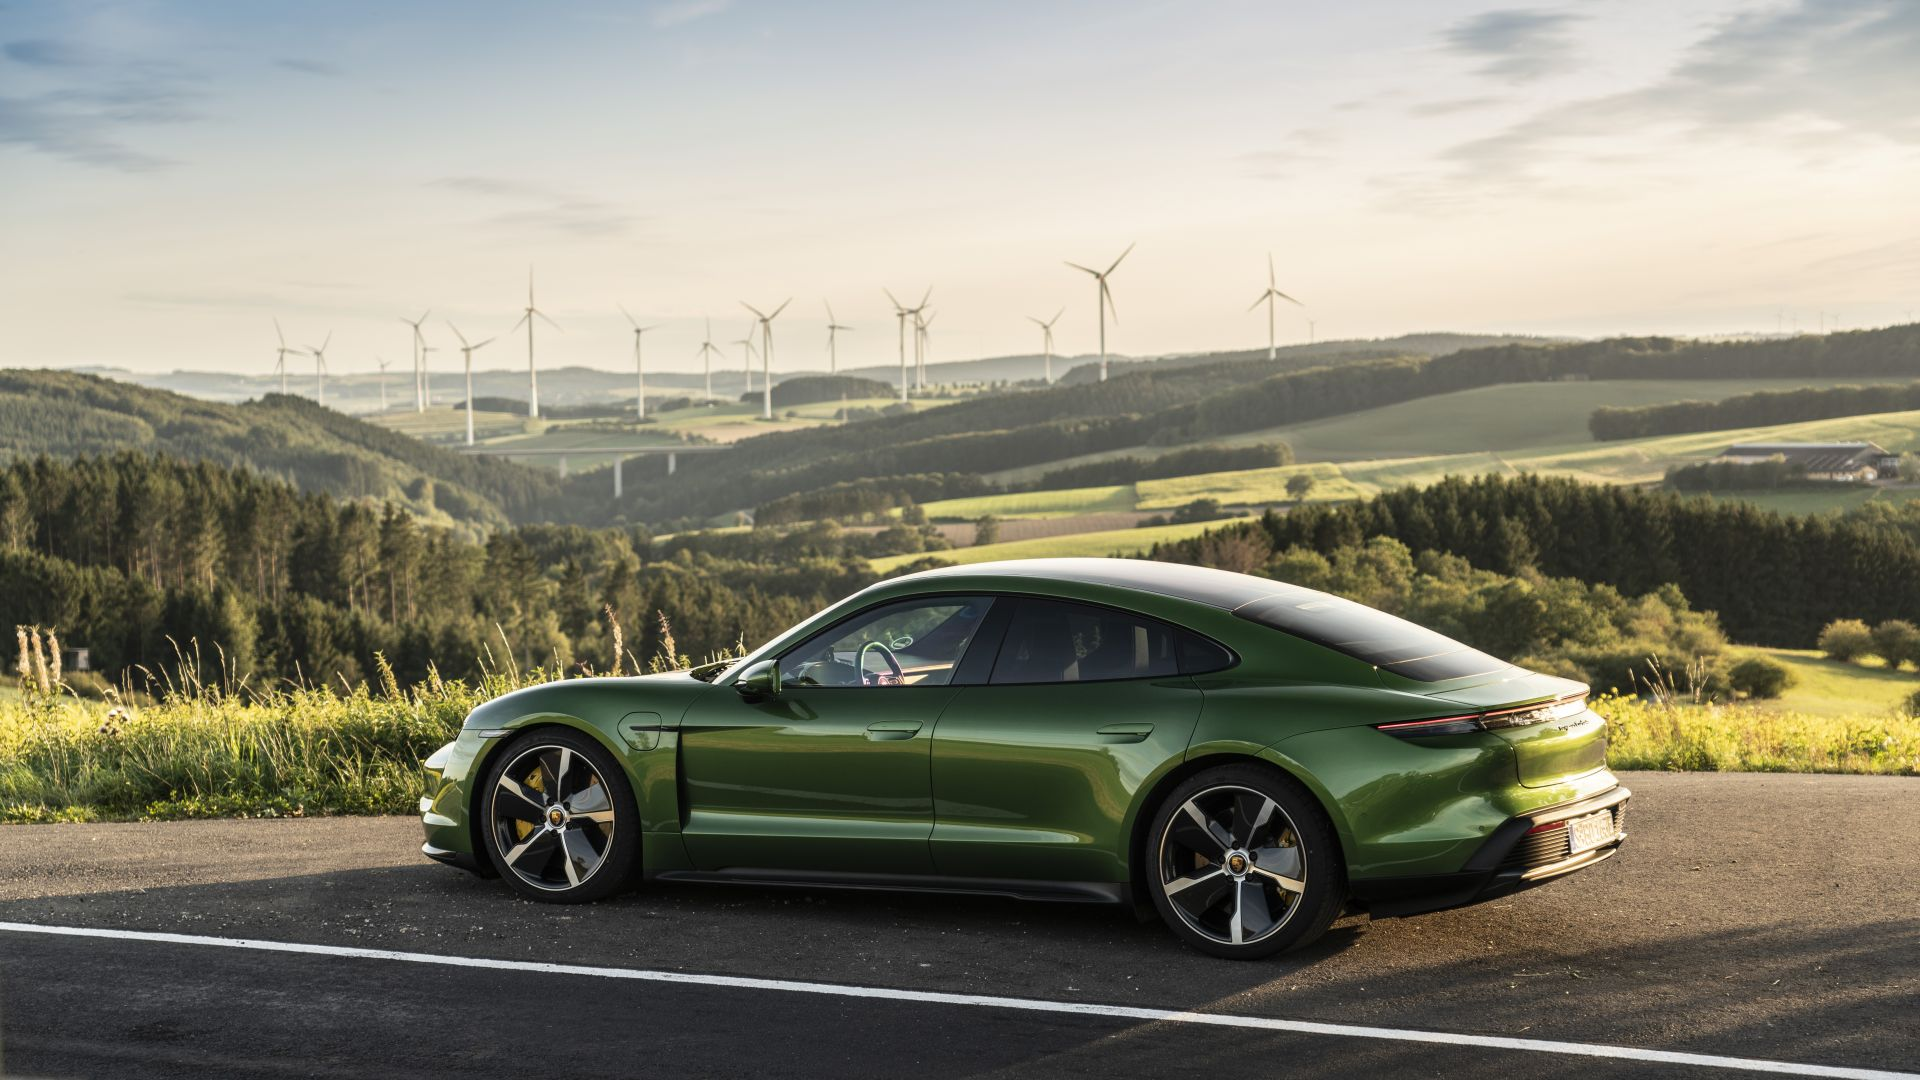 Porsche Taycan Turbo, electric cars, 2019 cars, 8K, Porsche Taycan Turbo, electric cars, 2019 cars, 8K (horizontal)